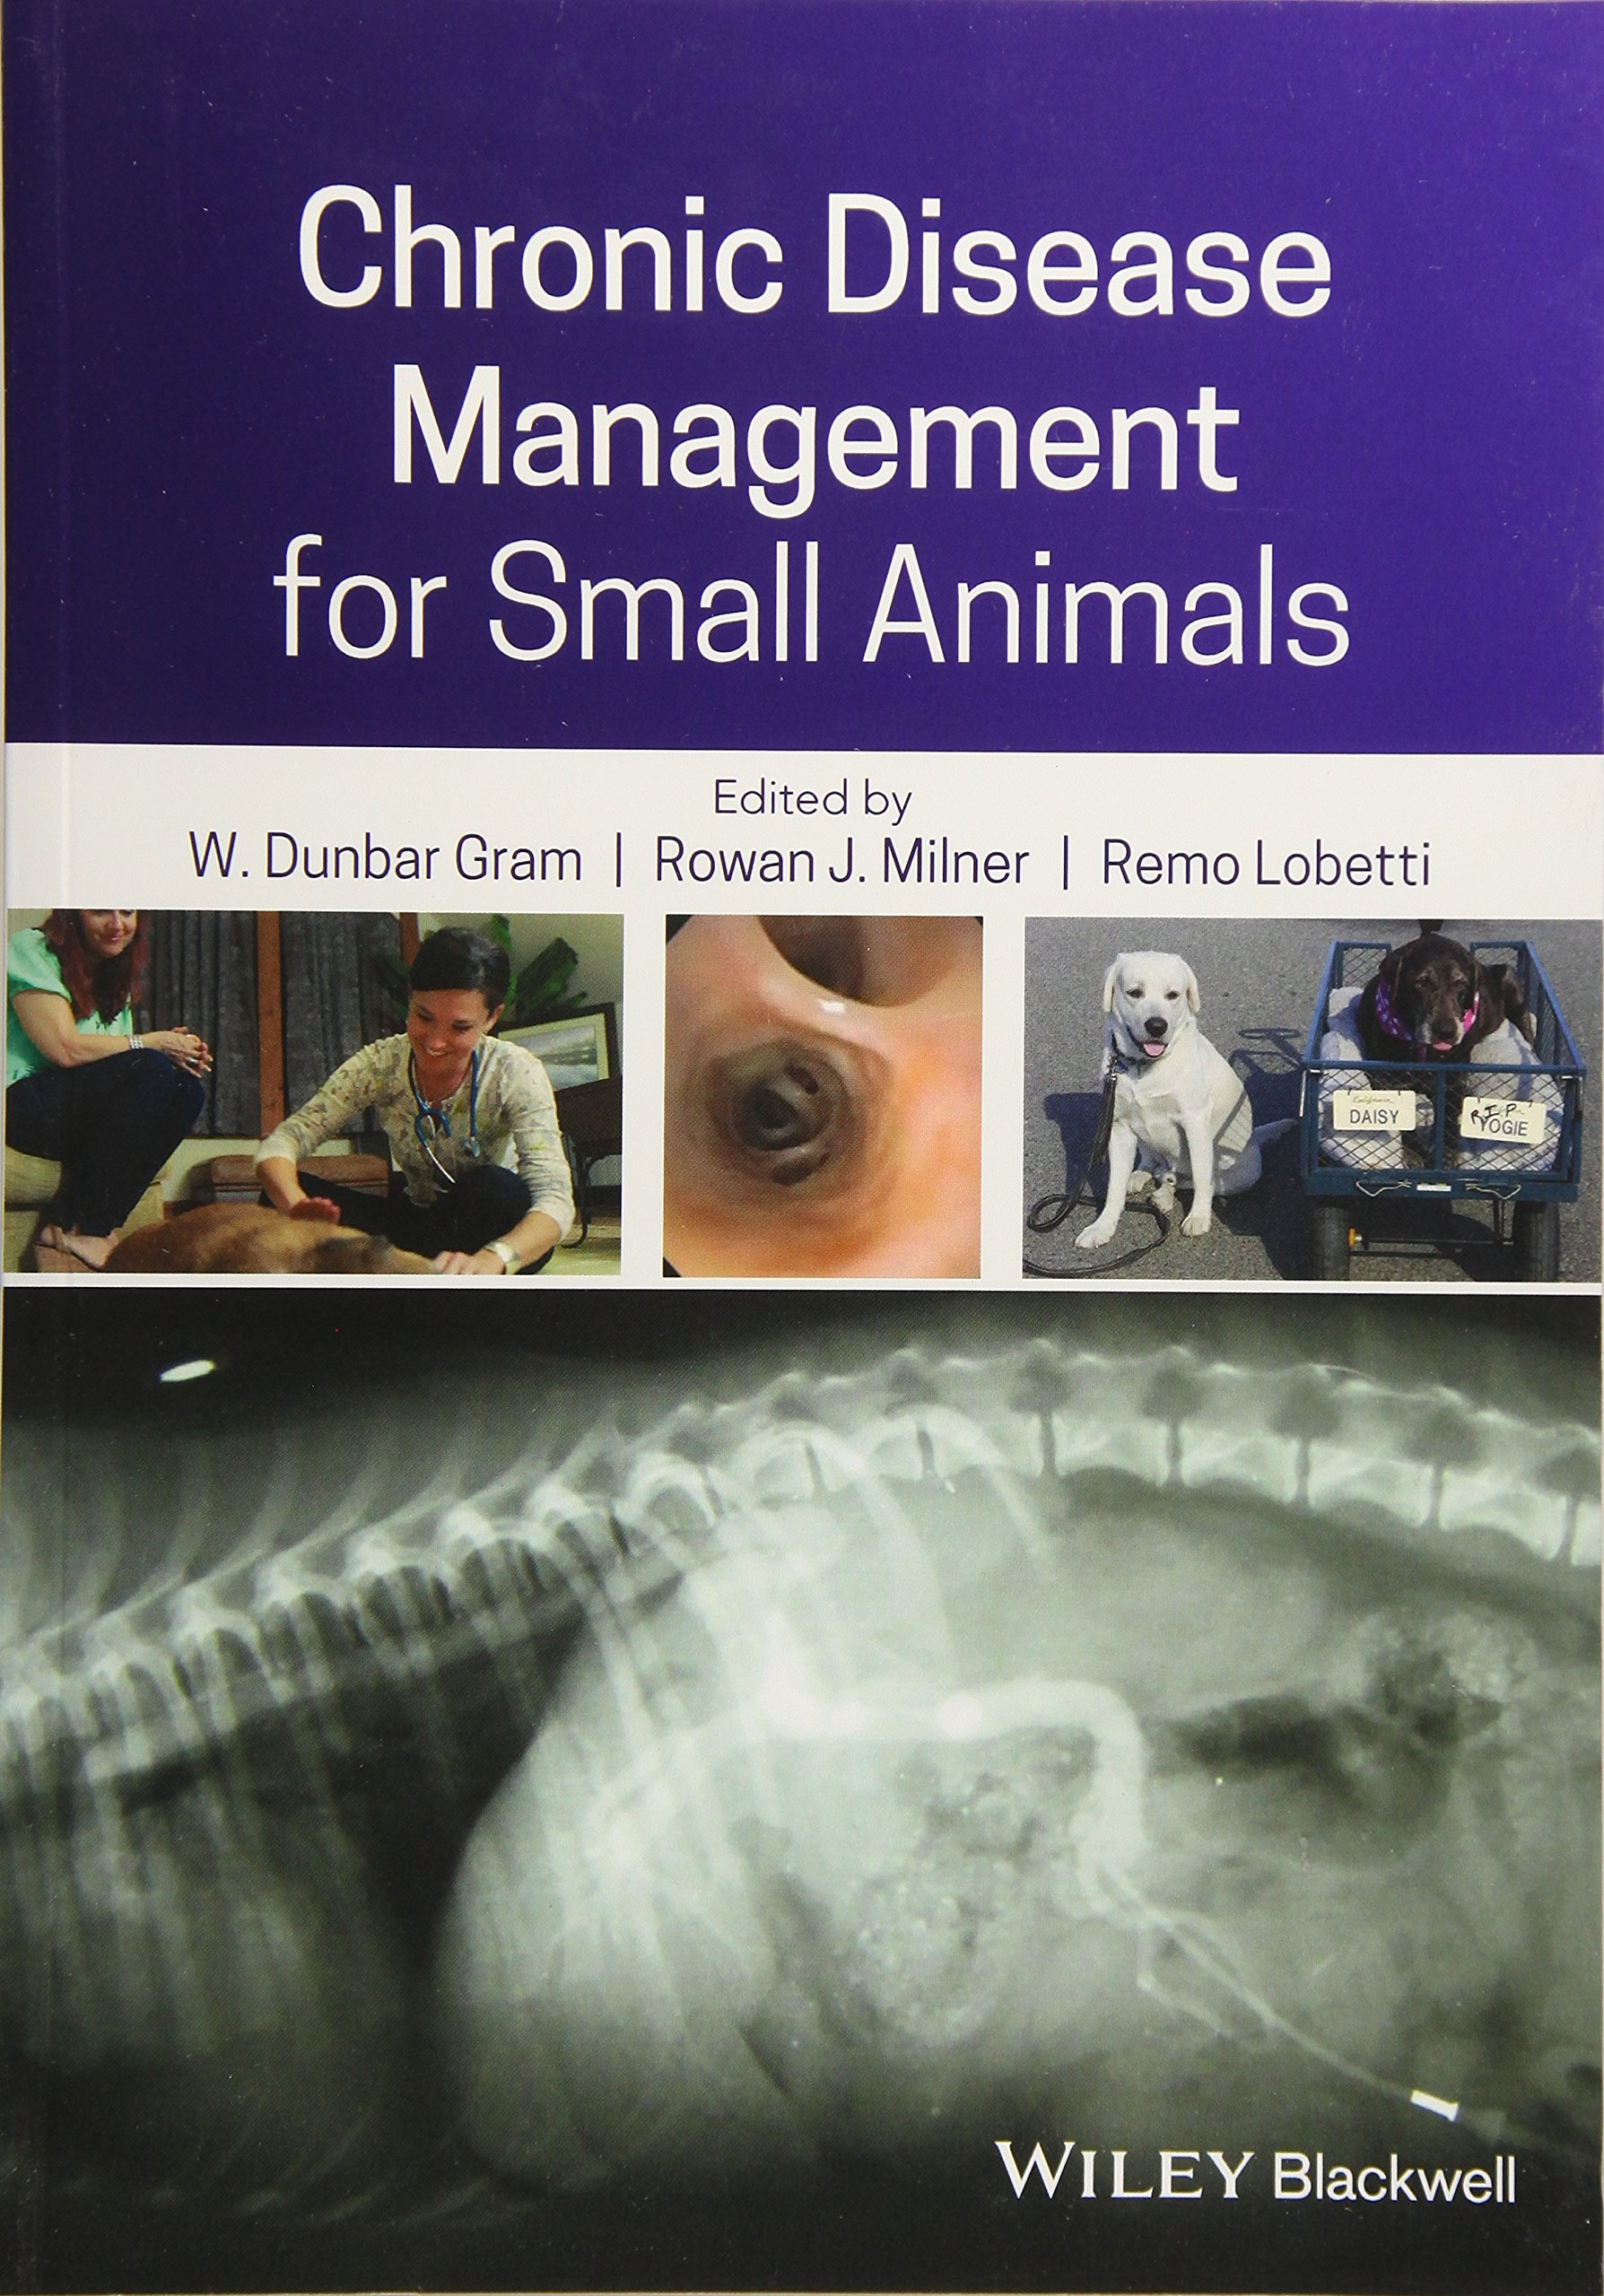 Download Chronic Disease Management For Small Animals 